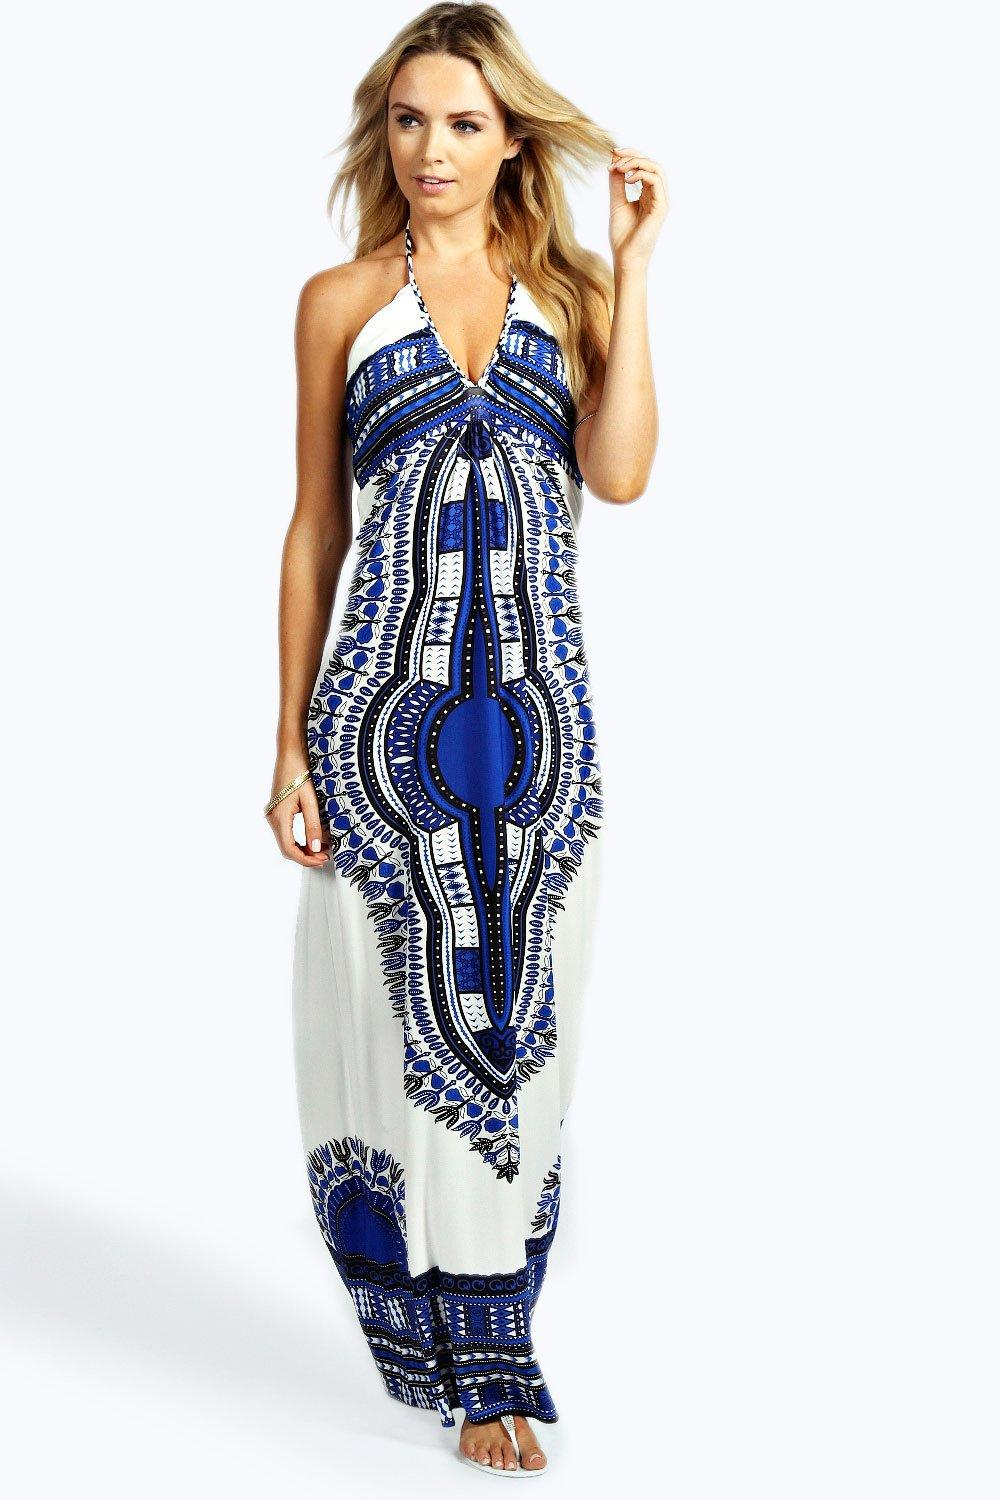 Megan Placement Print Halterneck Maxi Dress | Boohoo